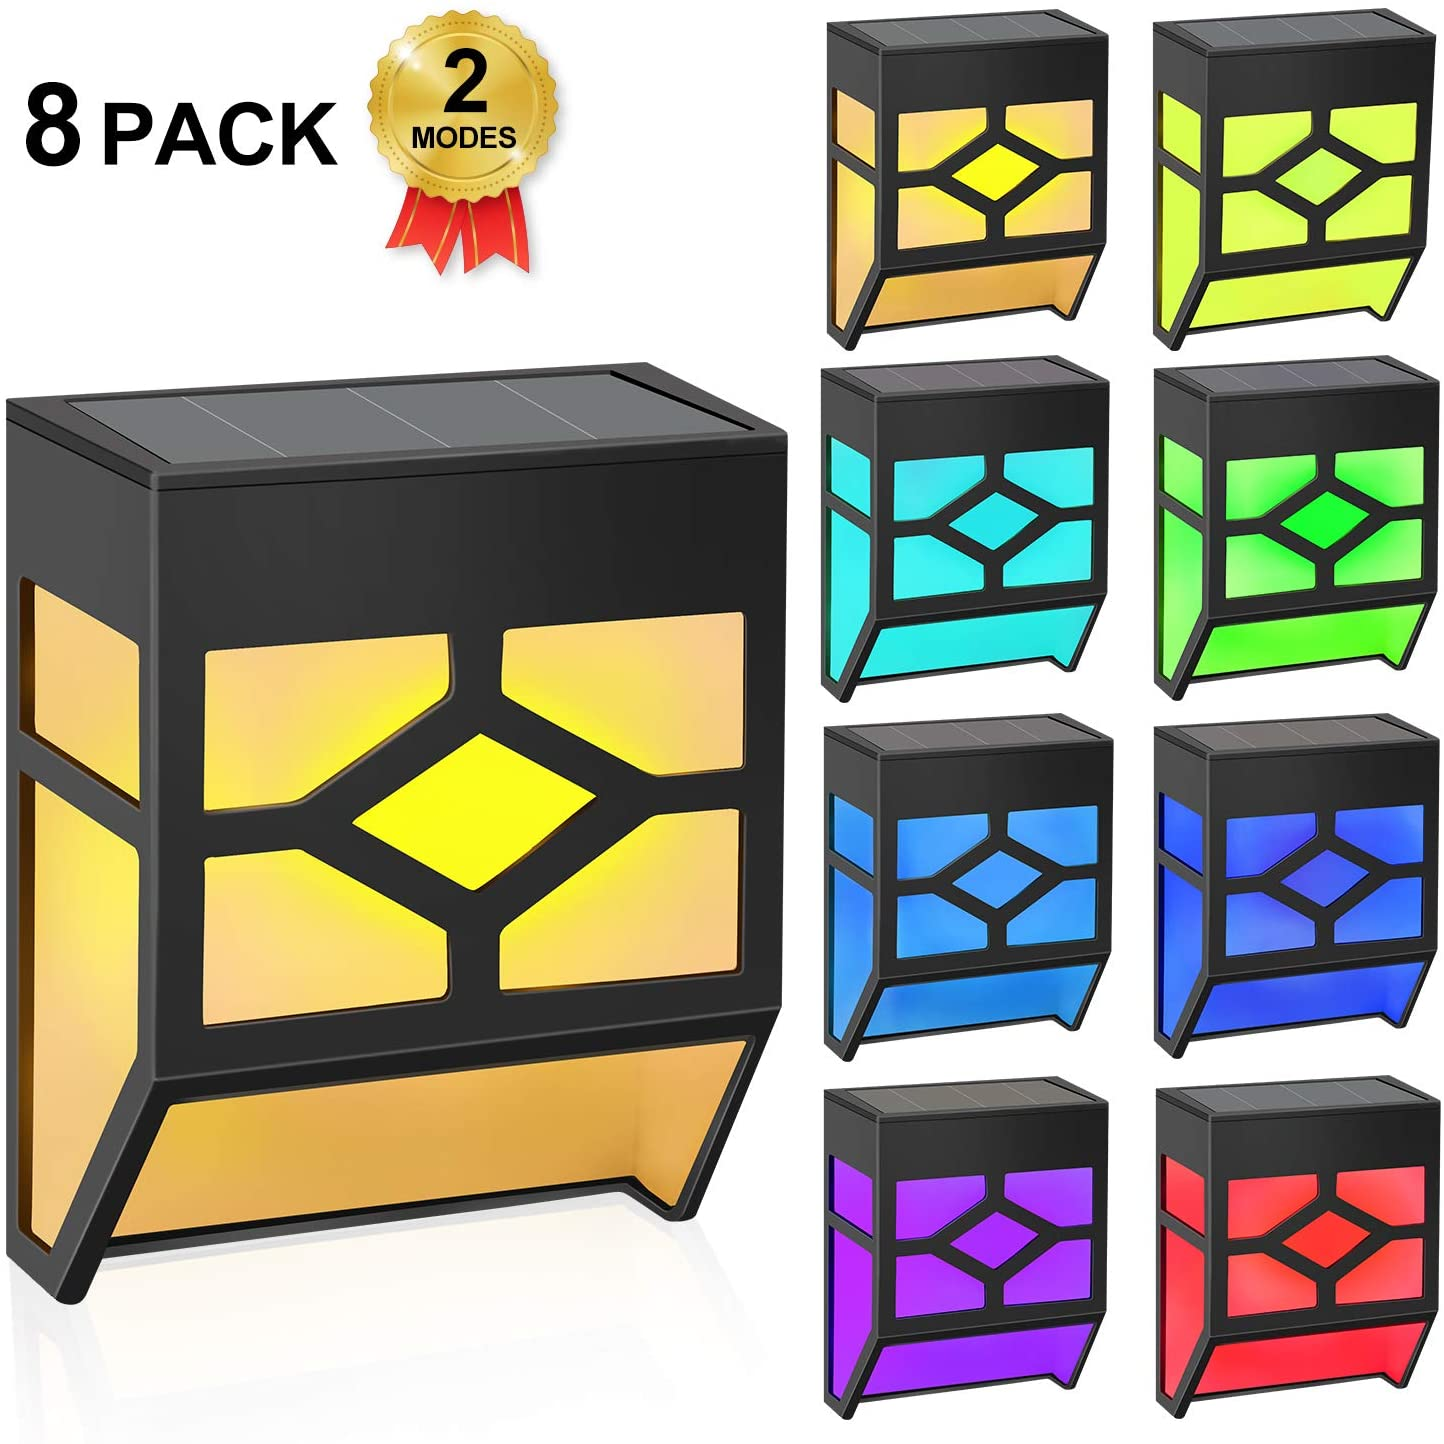 Solar Lights Outdoor Decorative LED Solar Fence Lights RGB Waterproof Wireless Solar Deck Lights, 2 Modes Step Lights, Wall Lights for Stairs, Deck,Yard, Fence and Patio, Pack of 8